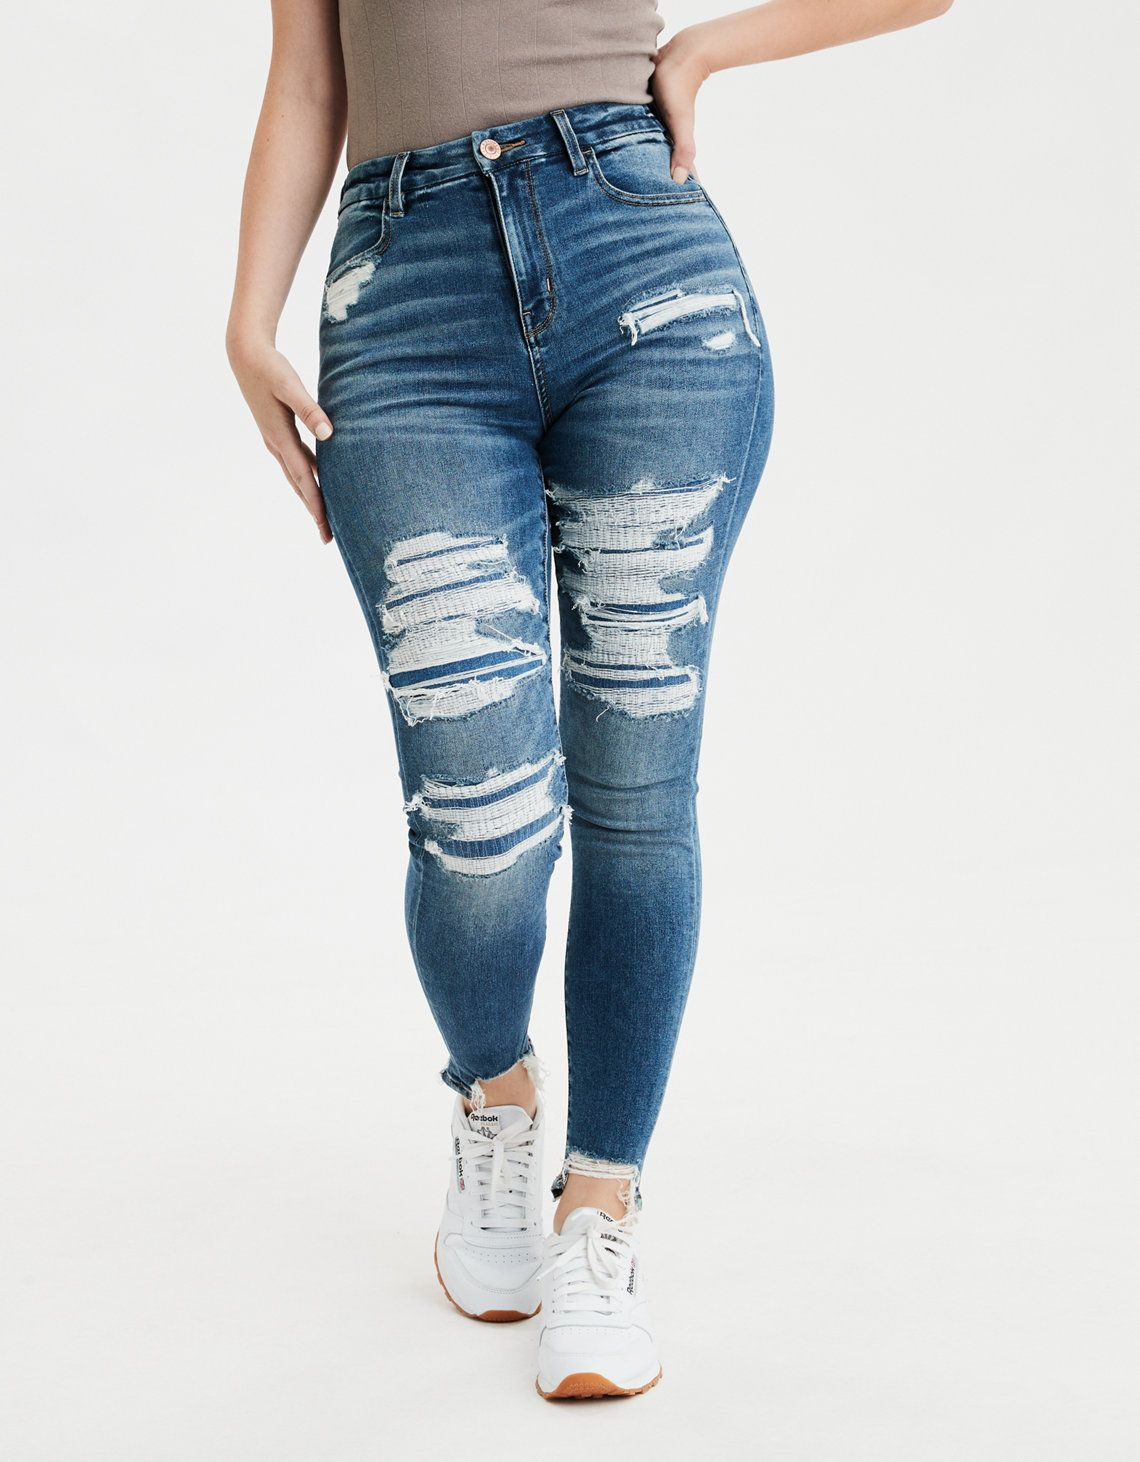 American eagle curvy jeans